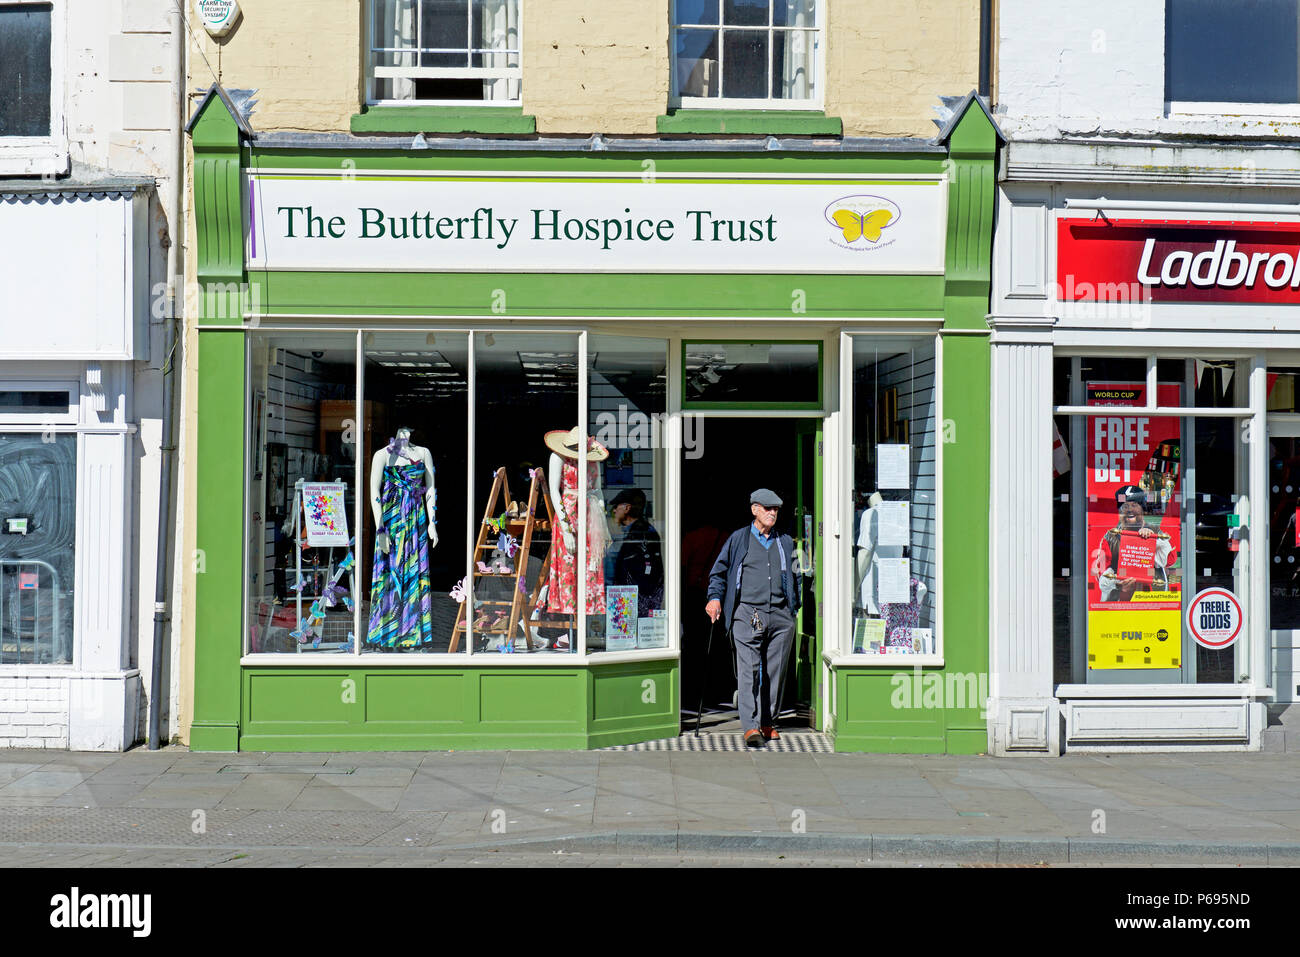 Charity shop - The Butterfly Hospice Trust - Boston, Lincolnshire, England UK - Stock Image